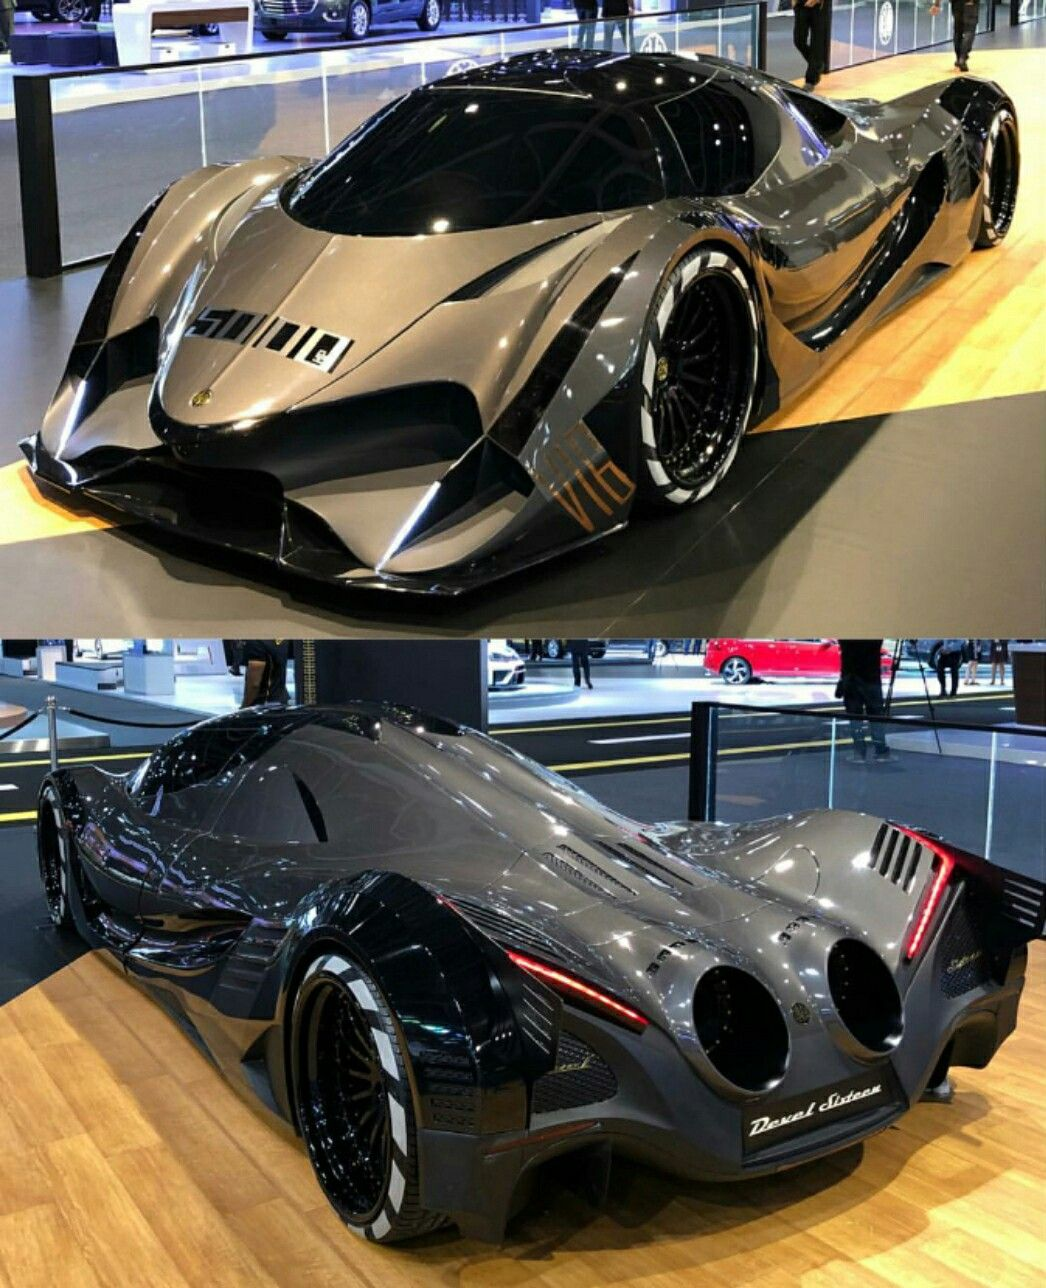 Best Supercars 2017: Devel Sixteen... 12.3Ltr V16 Quad Turbo 5,000HP @ The